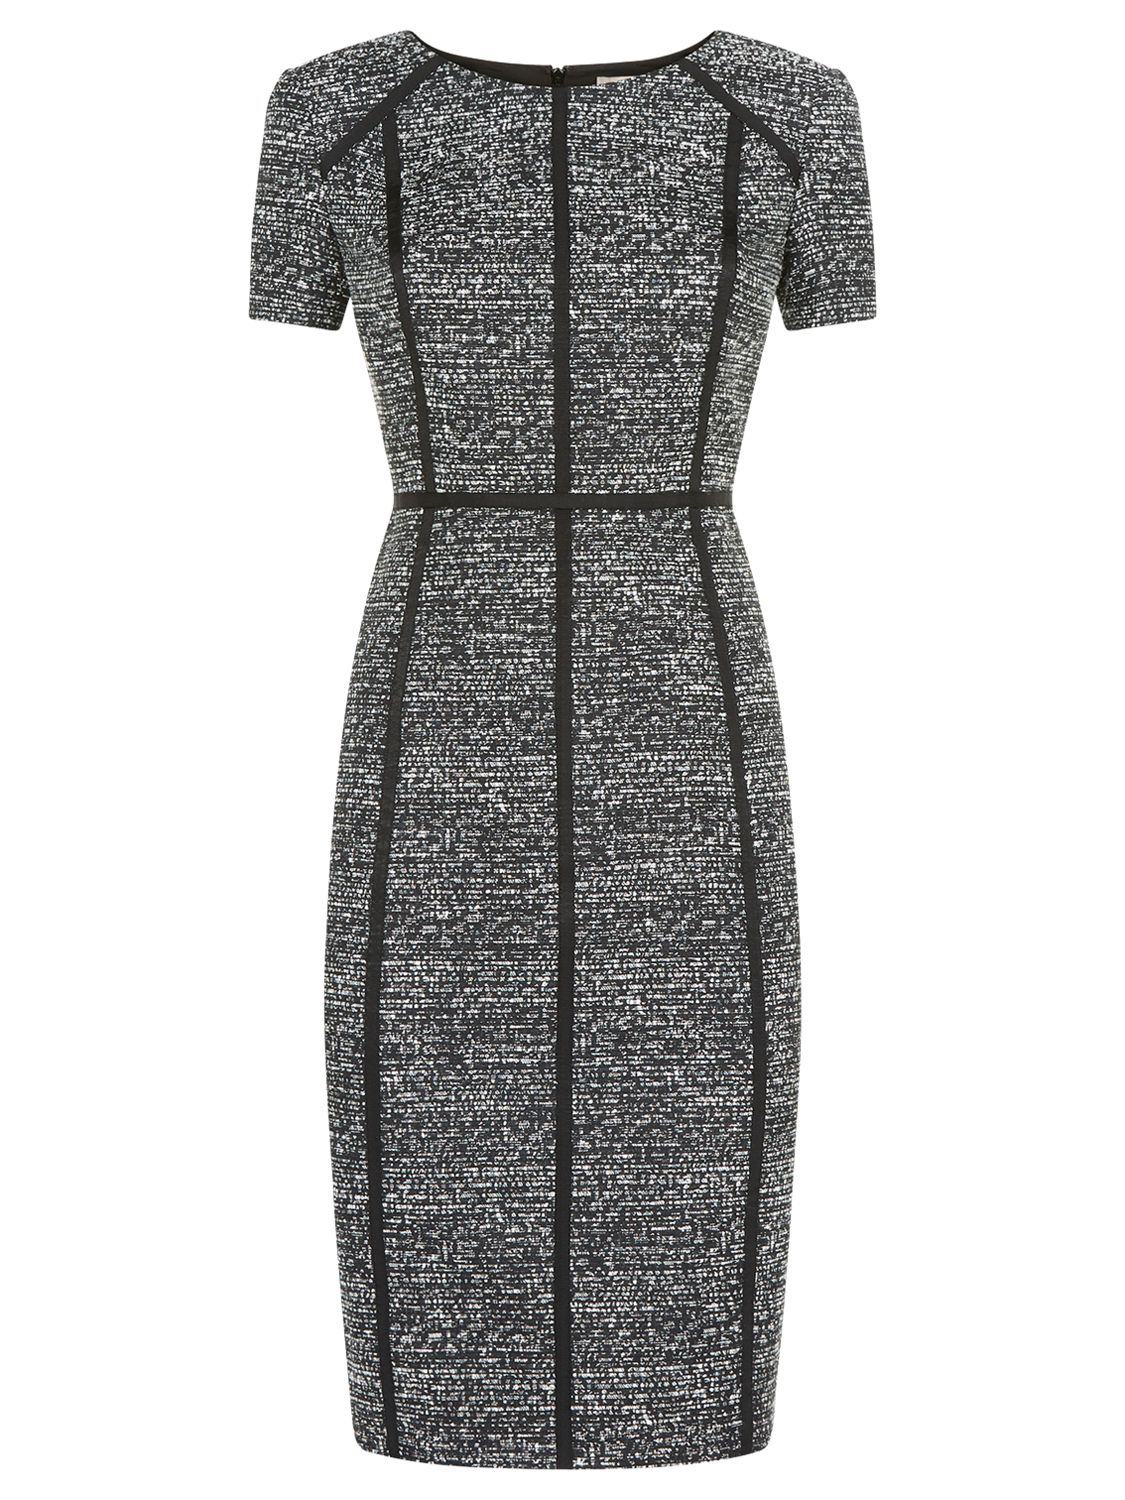 planet textured shift dress black/ivory, planet, textured, shift, dress, black/ivory, 8|12|14|18|10|16, clearance, womenswear offers, womens dresses offers, women, inactive womenswear, new reductions, womens dresses, special offers, 1677207